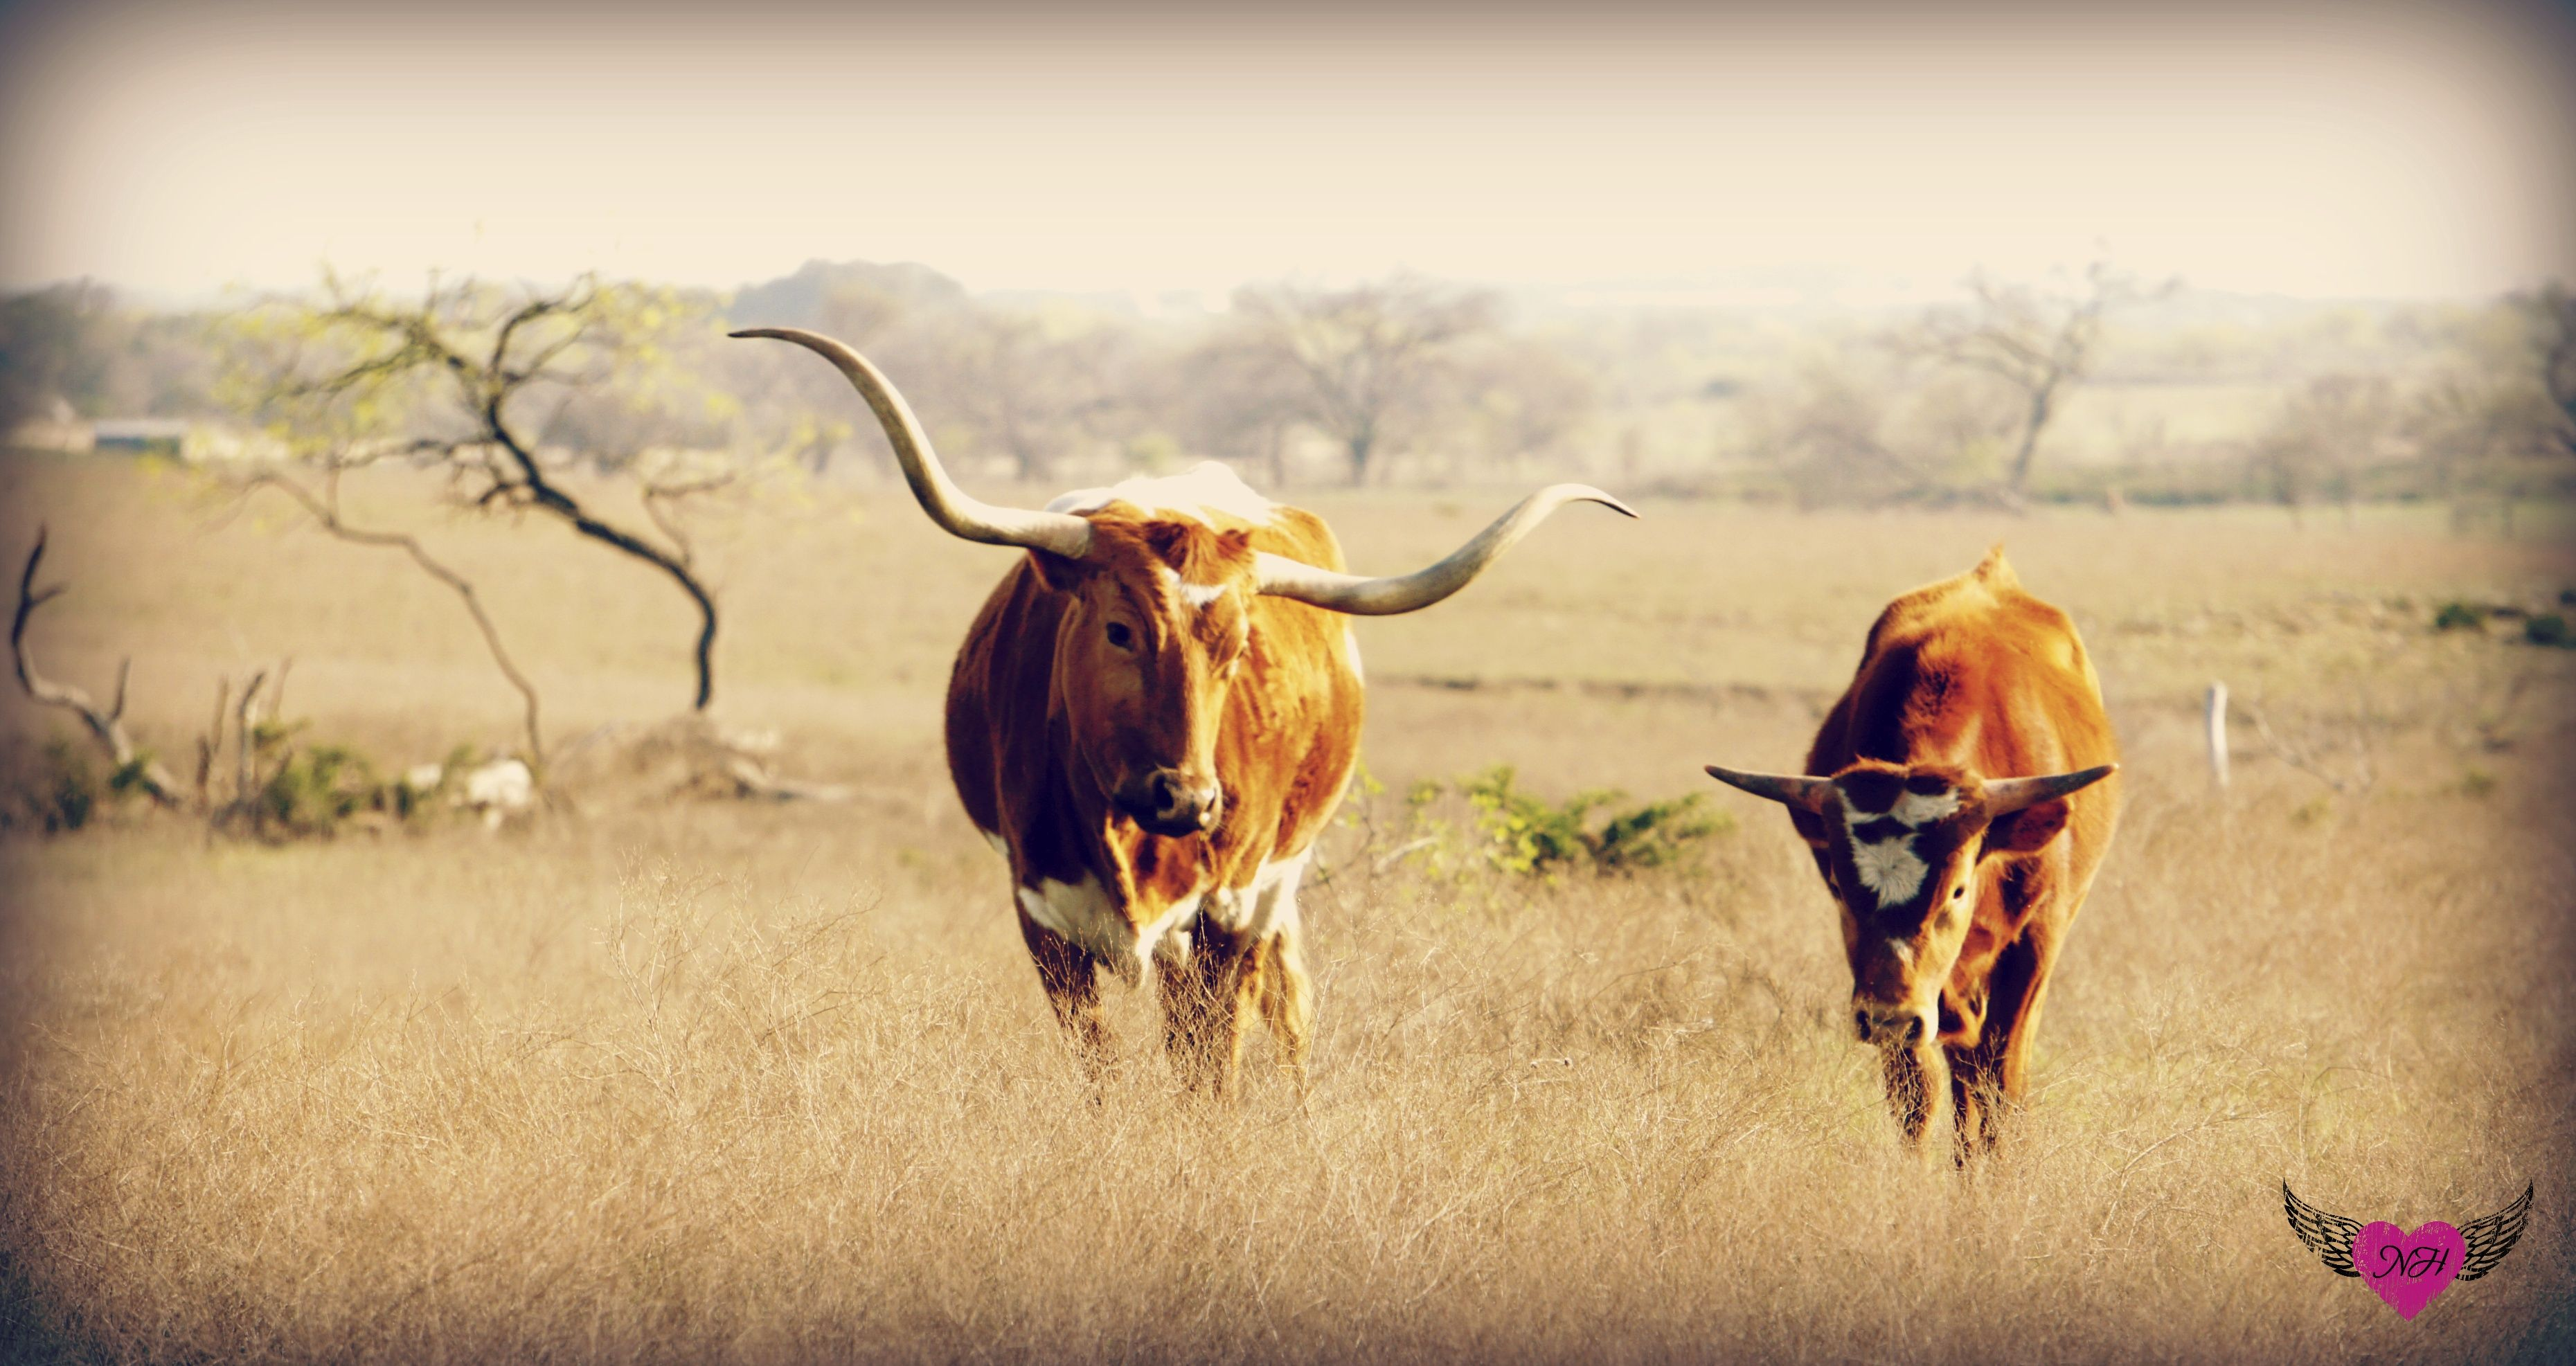 Longhorns #photography #hearts-and-feathers.com | Photography ...